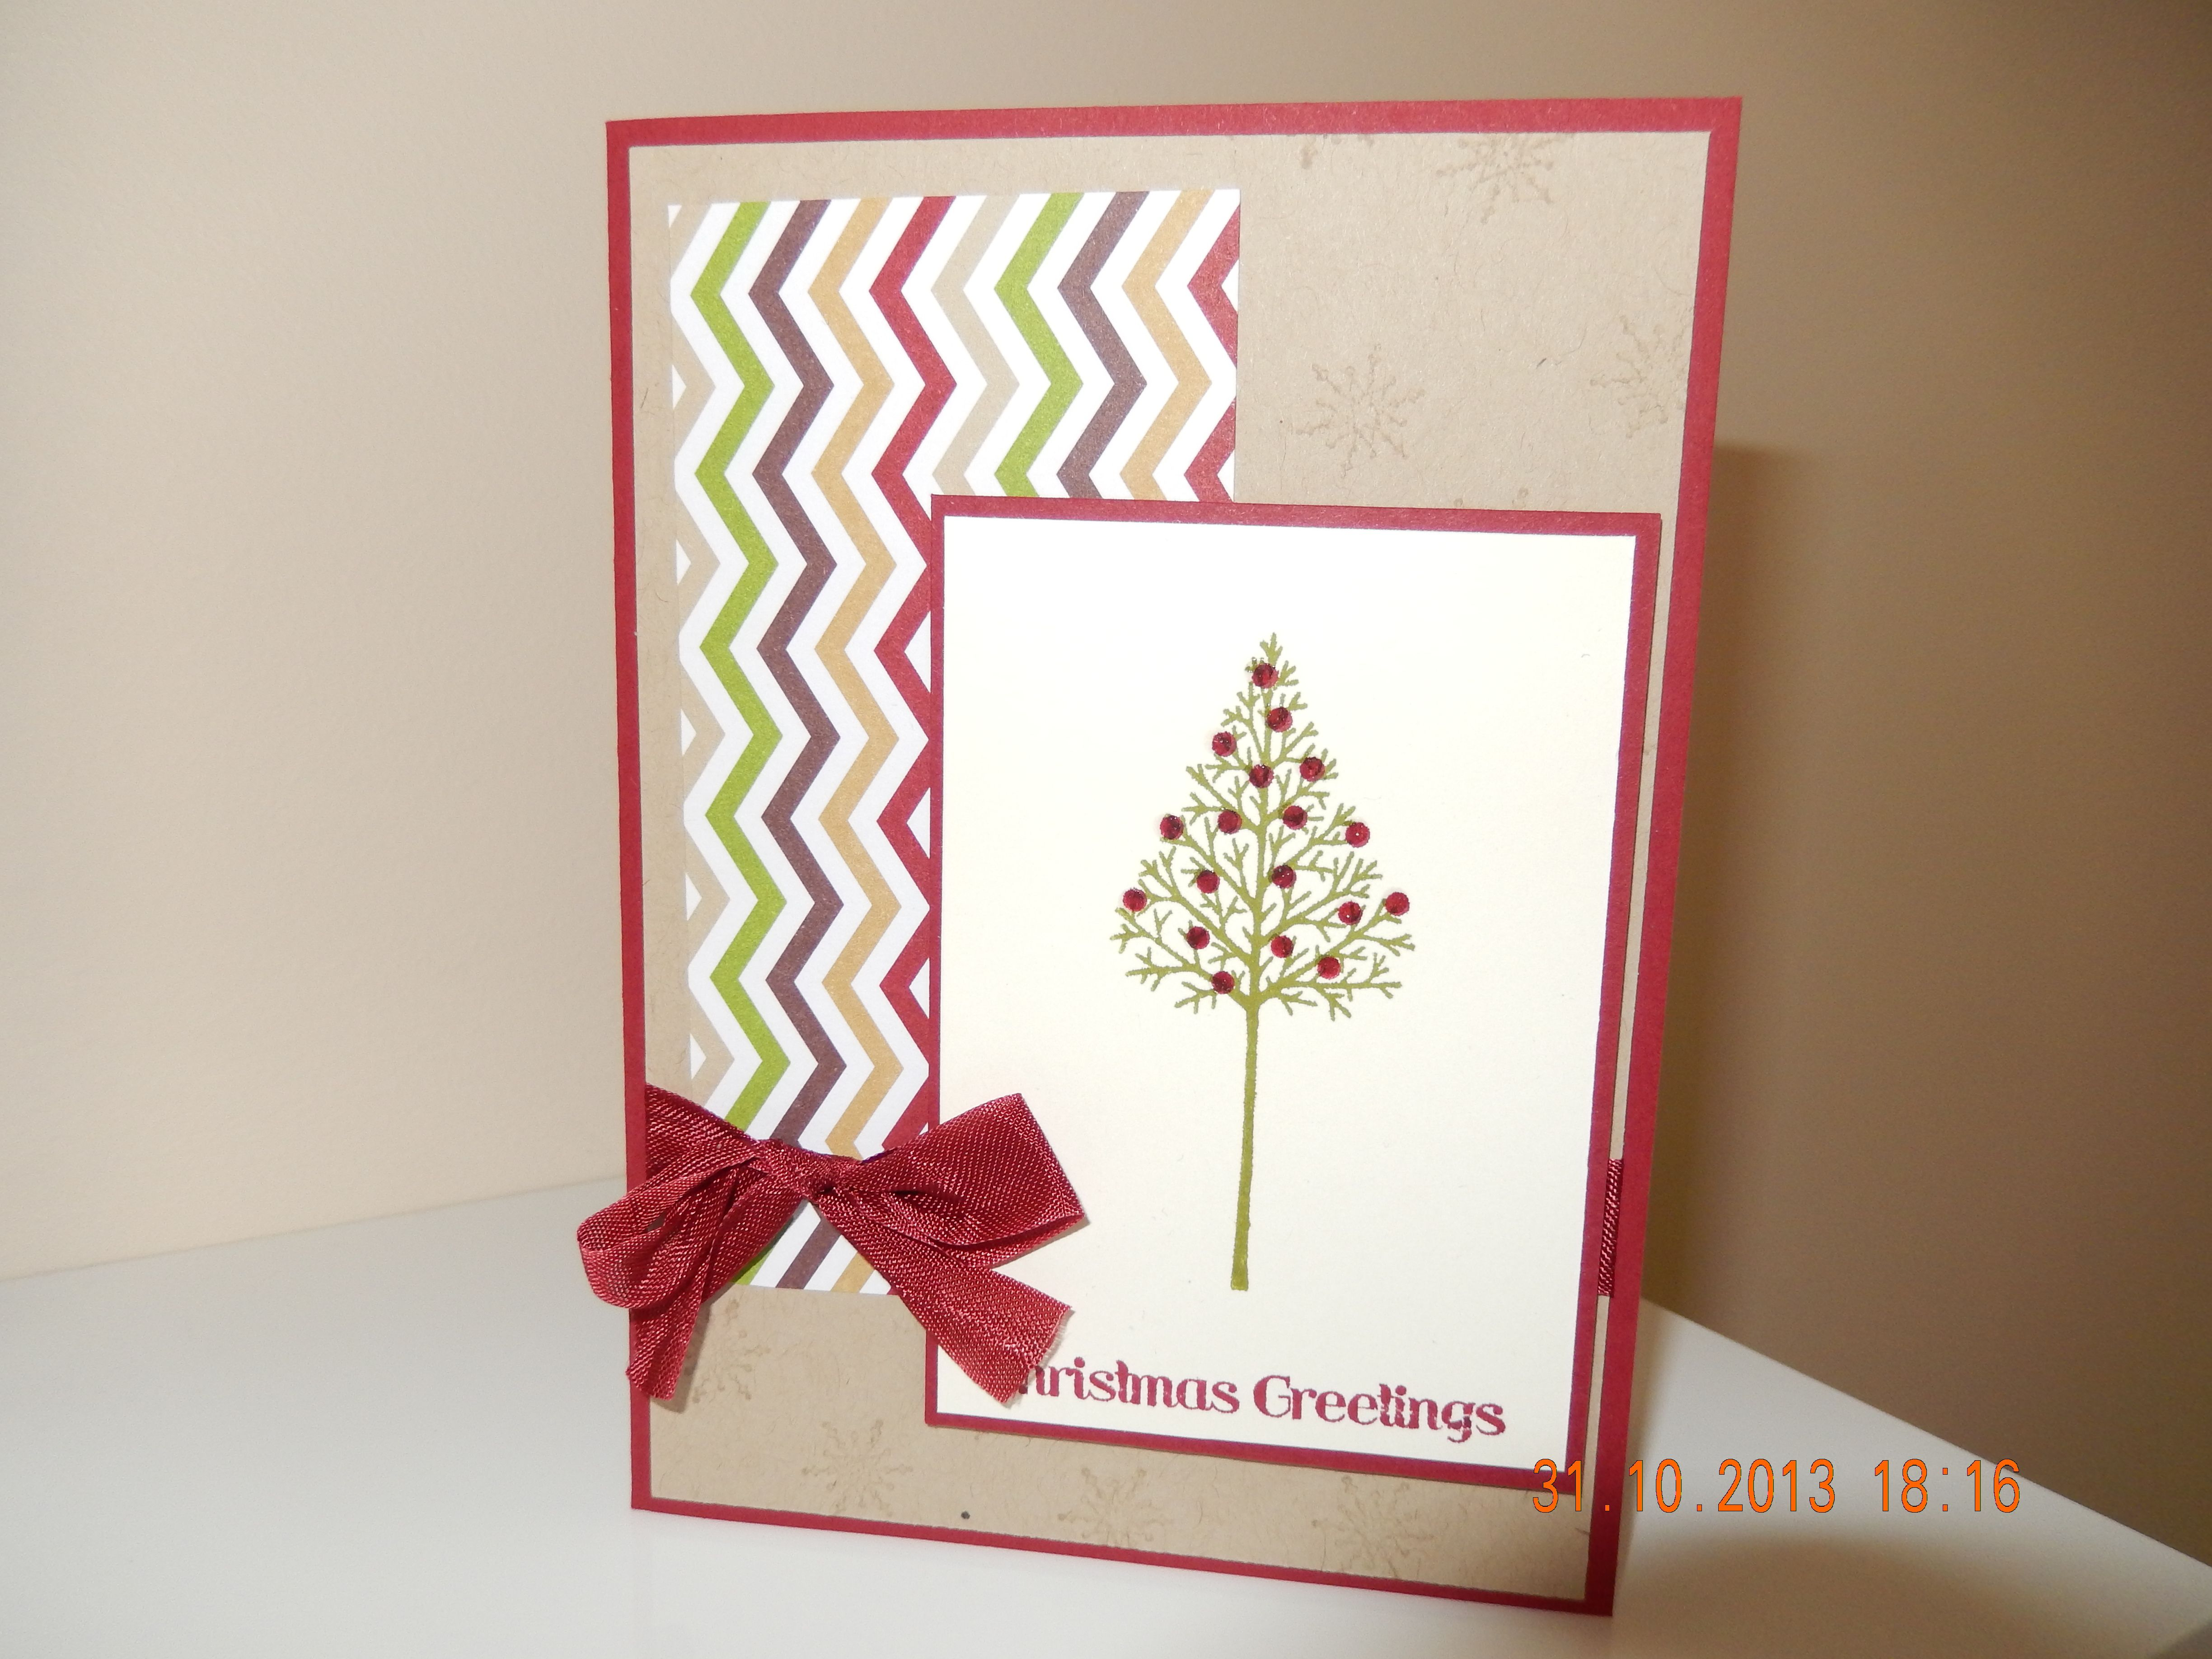 Stampin up stampin up card club ideas pinterest